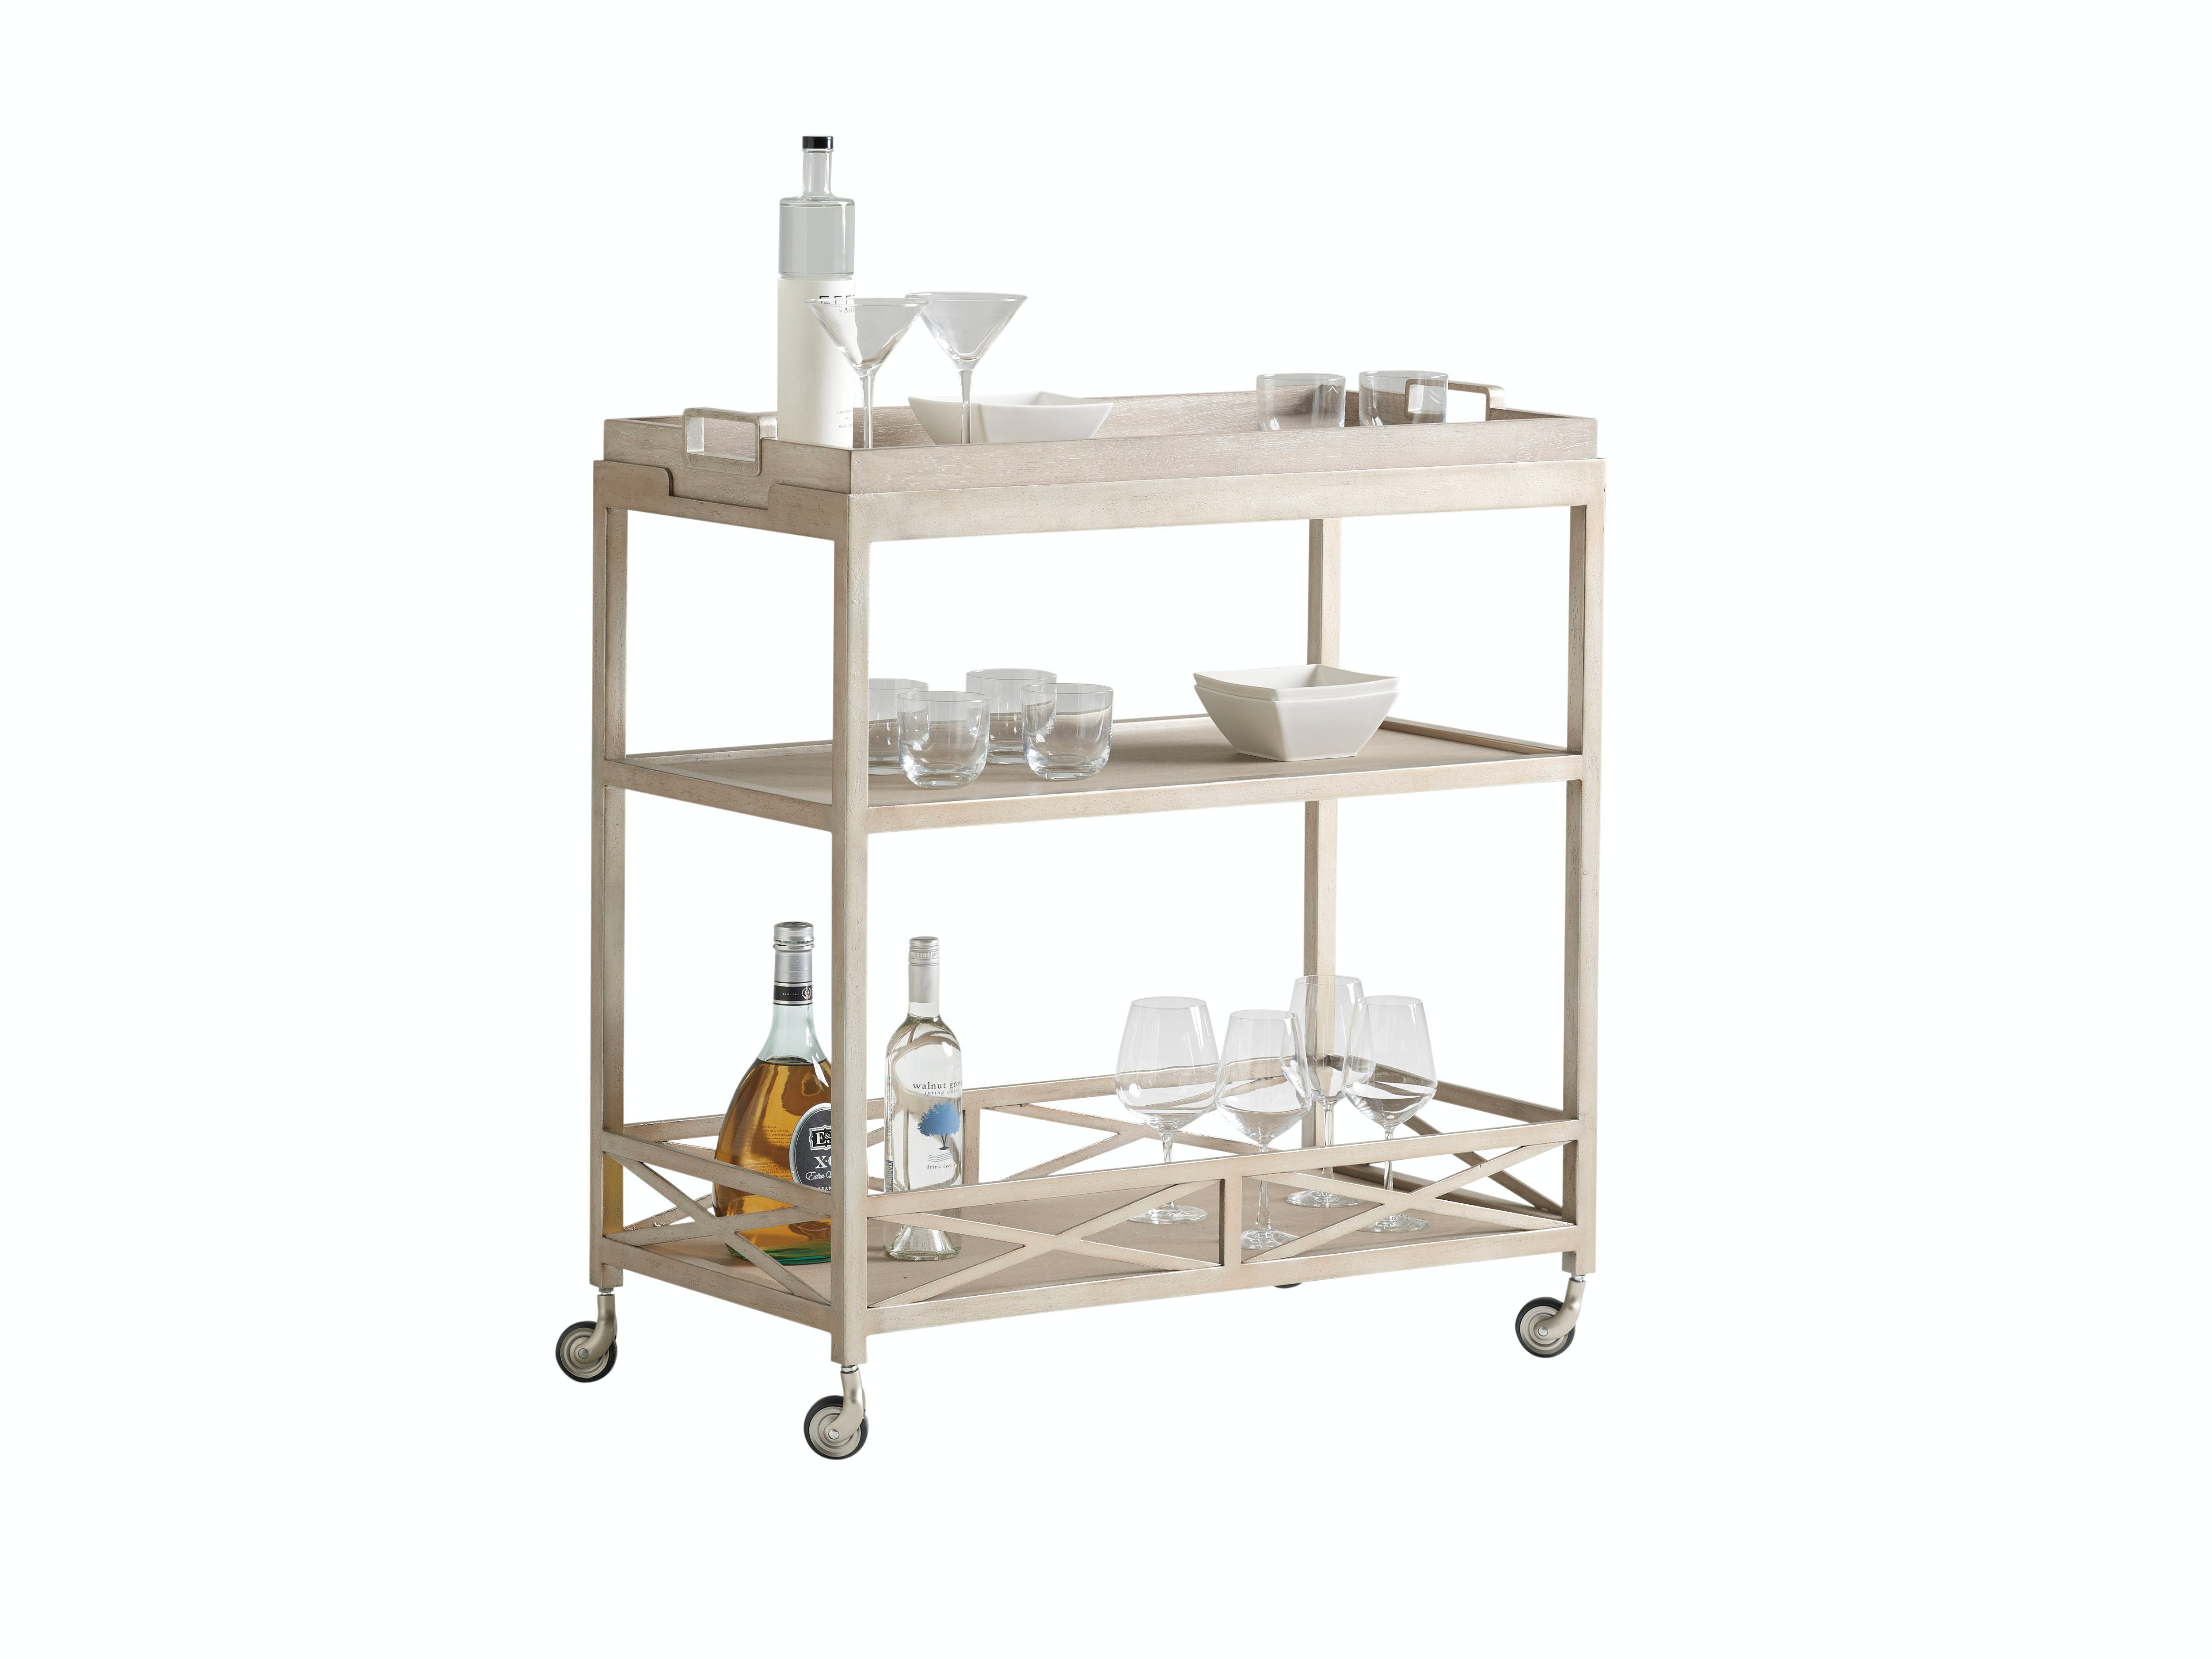 Barclay Butera By Lexington Accessories Anacapa Metal Bar Cart 926 862 White House Designs For